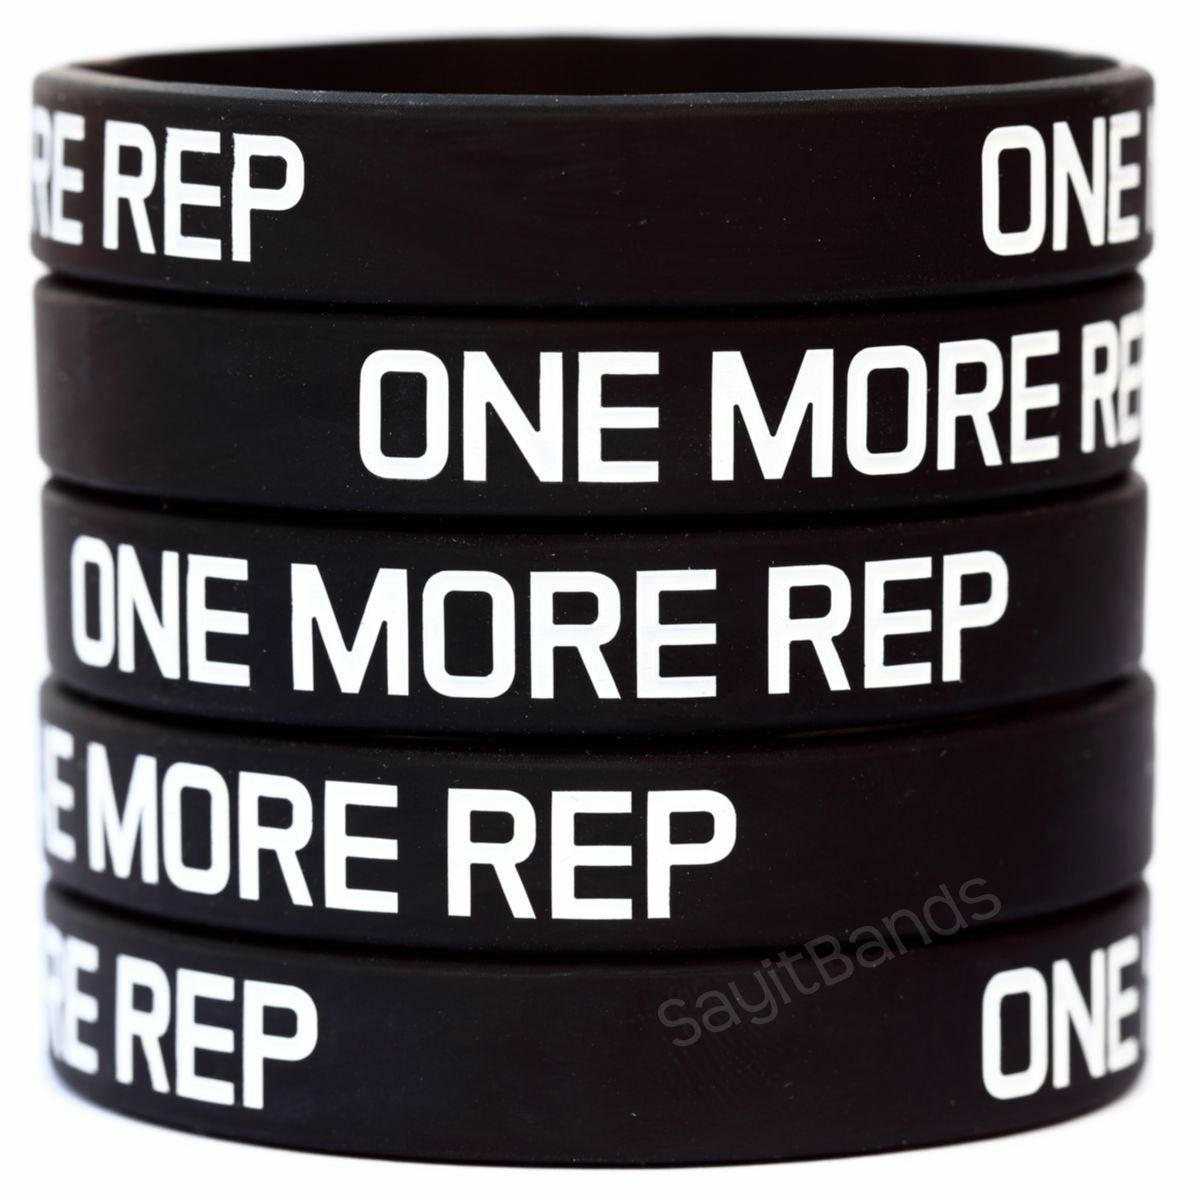 Primary image for ONE MORE REP Wristband Lot Set Silicone Bracelet Wrist Bands for Lifting Workout